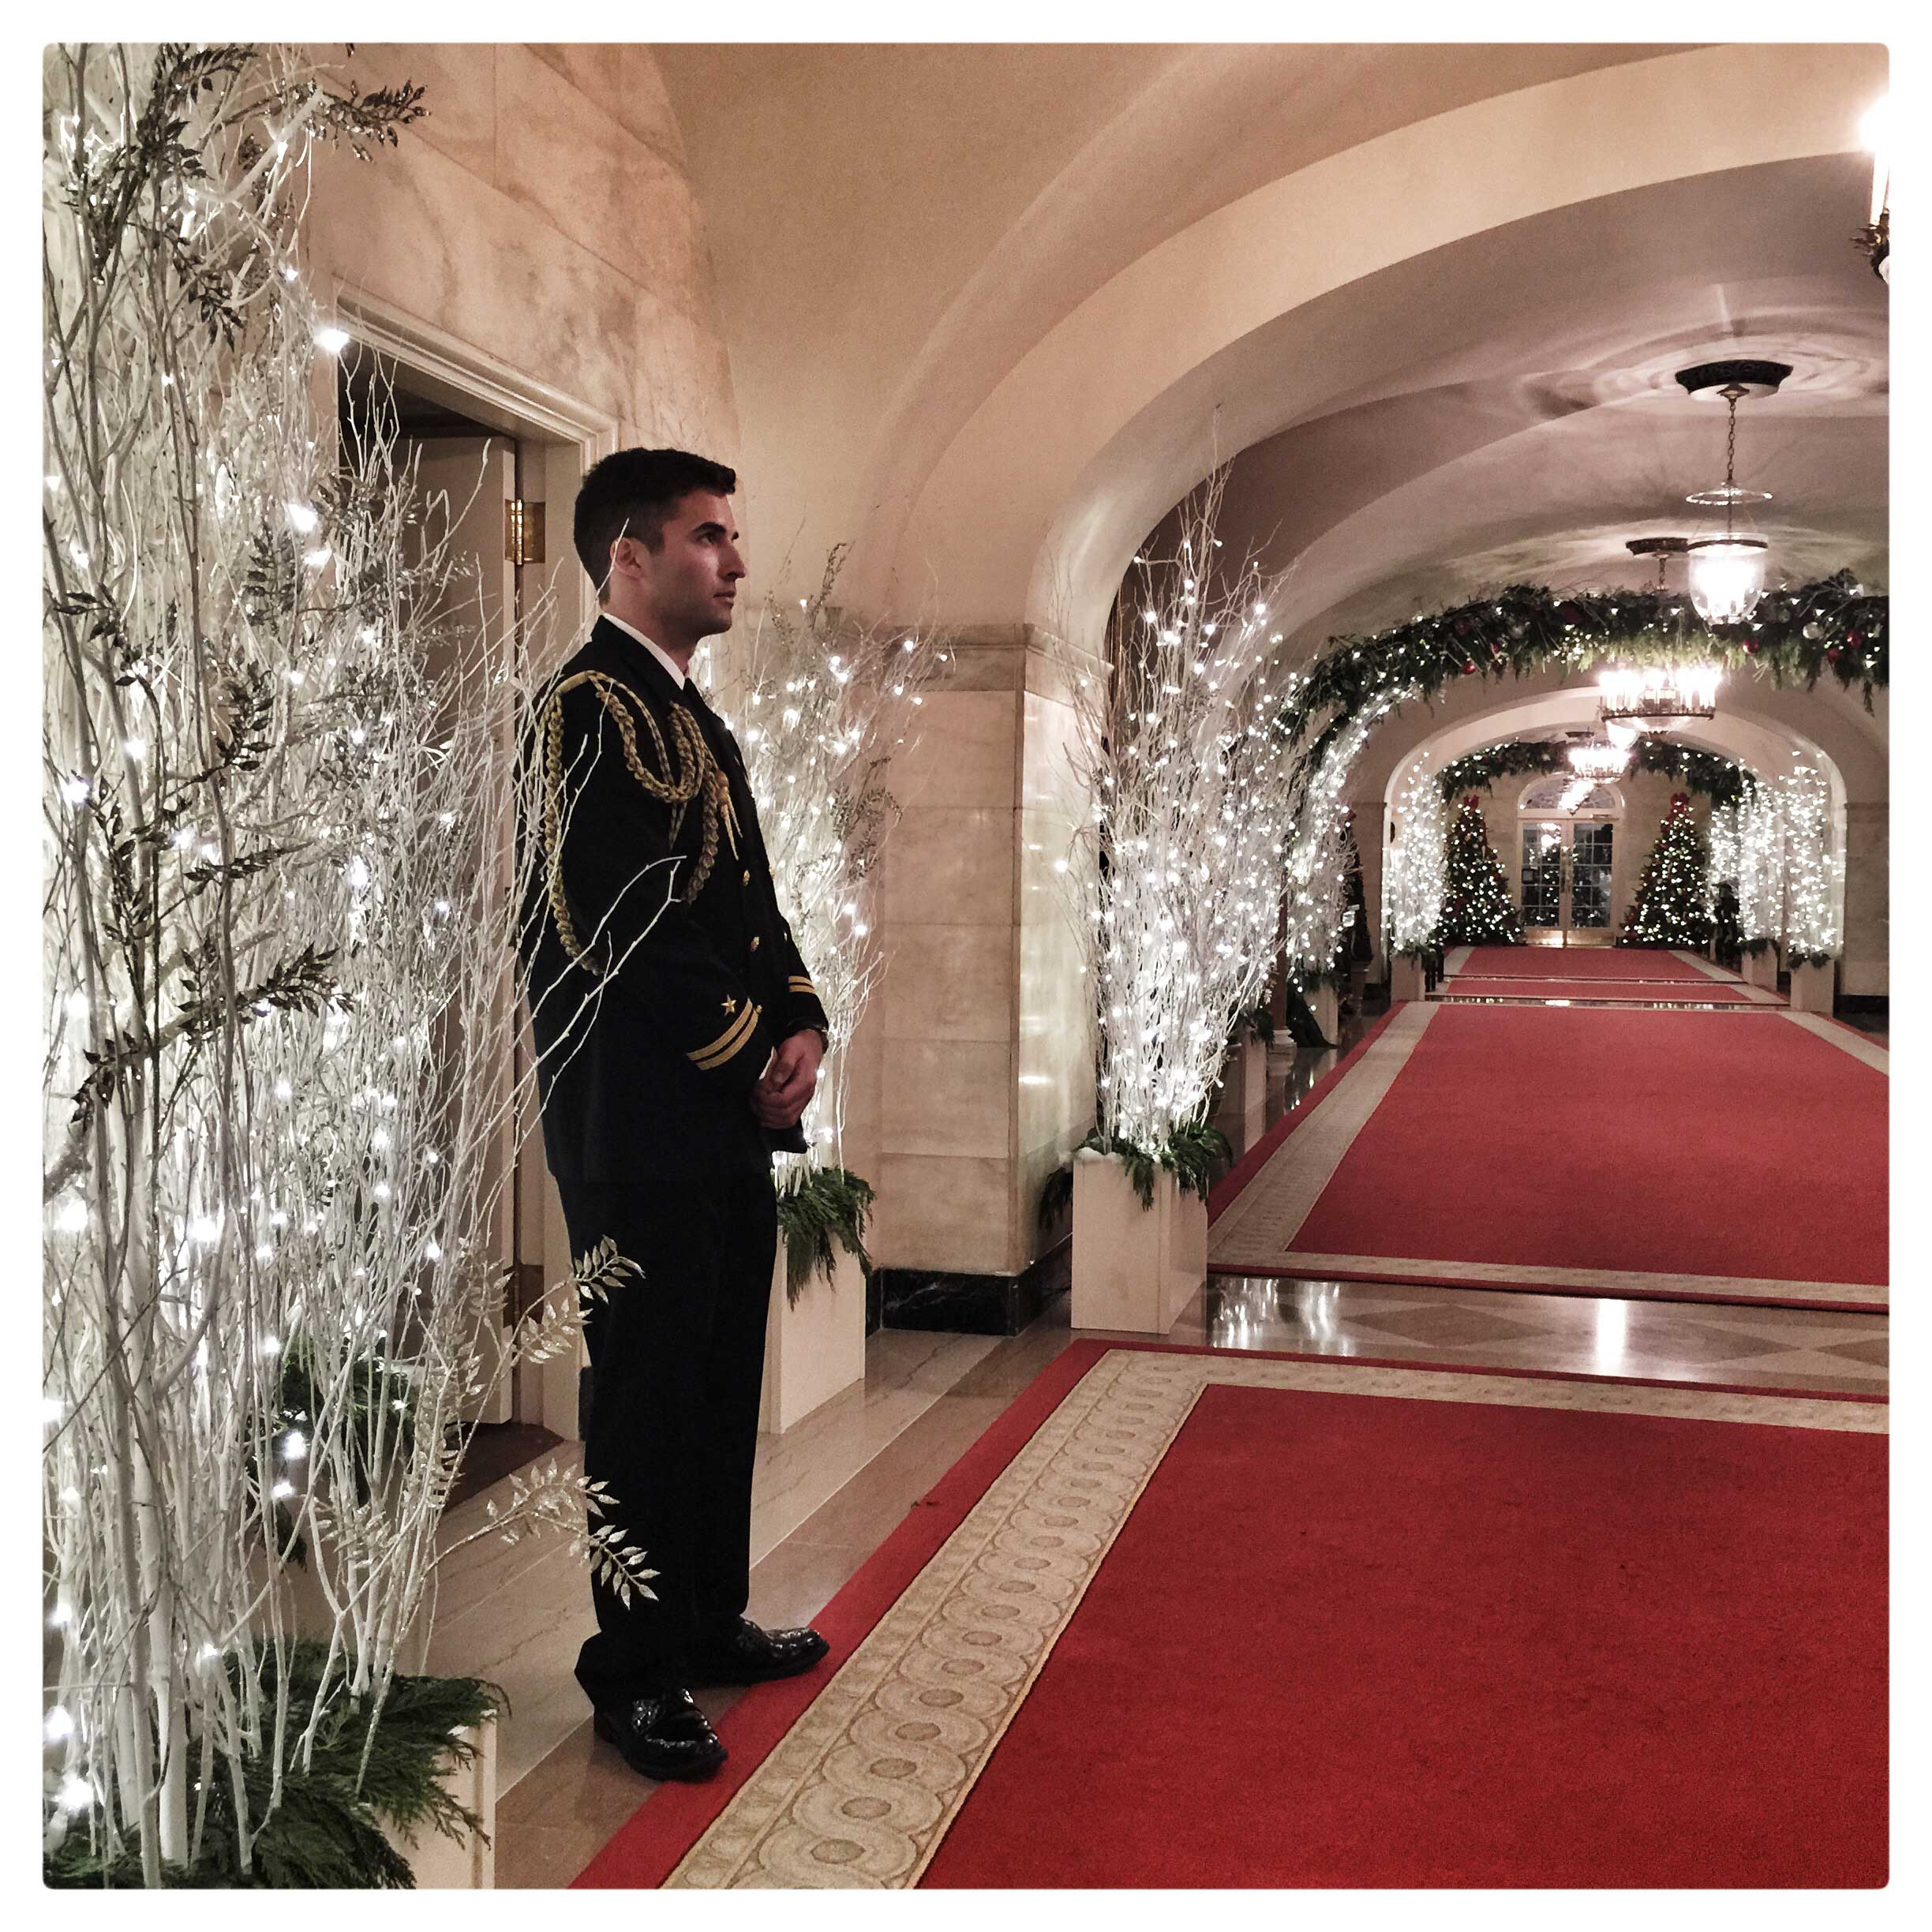 A military officer stands near holiday lights decorating a hallway in the White House.